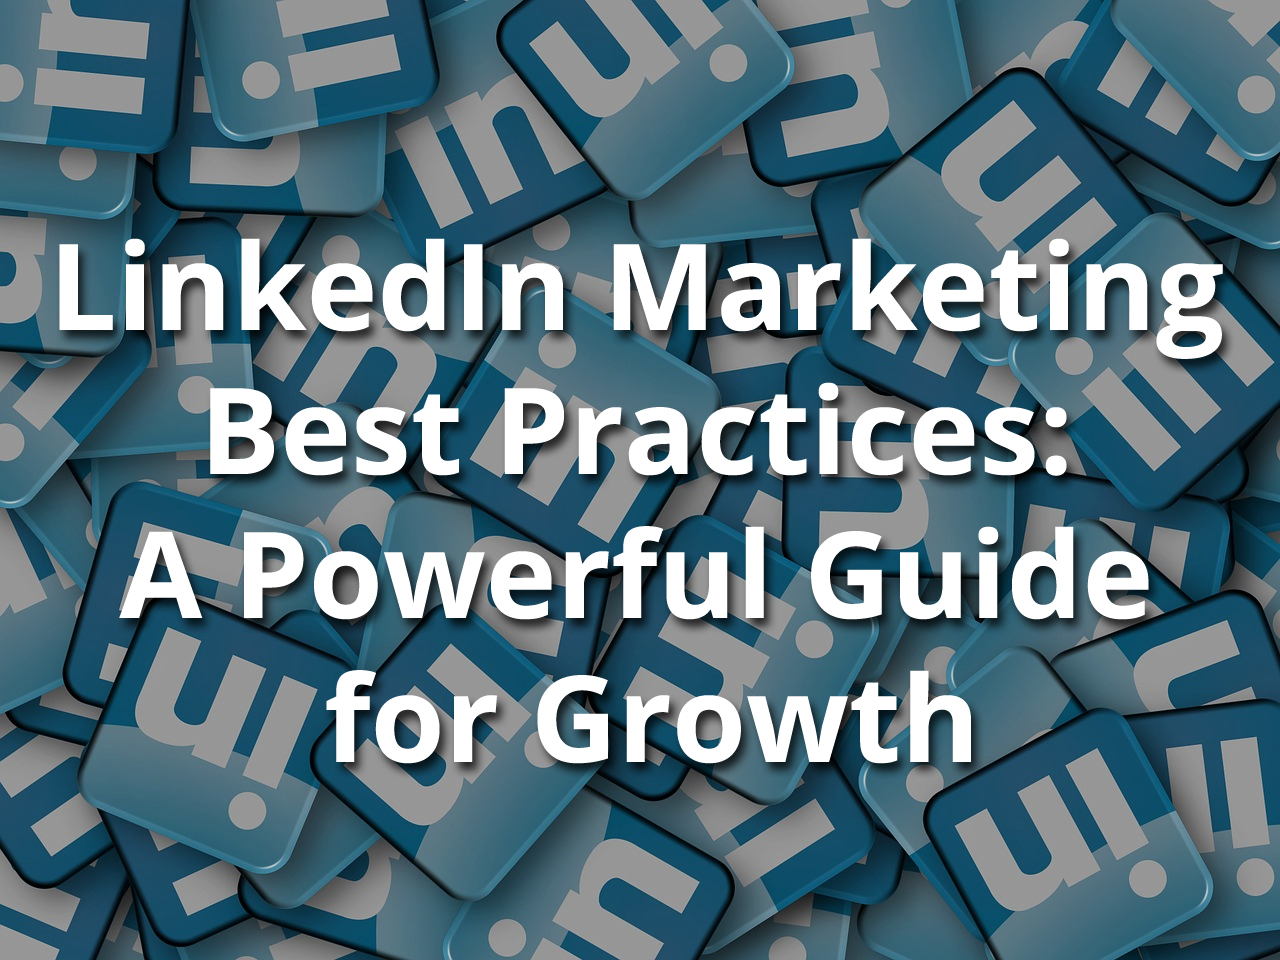 LinkedIn marketing best practices: a powerful guide for growth, via StartupDevKit